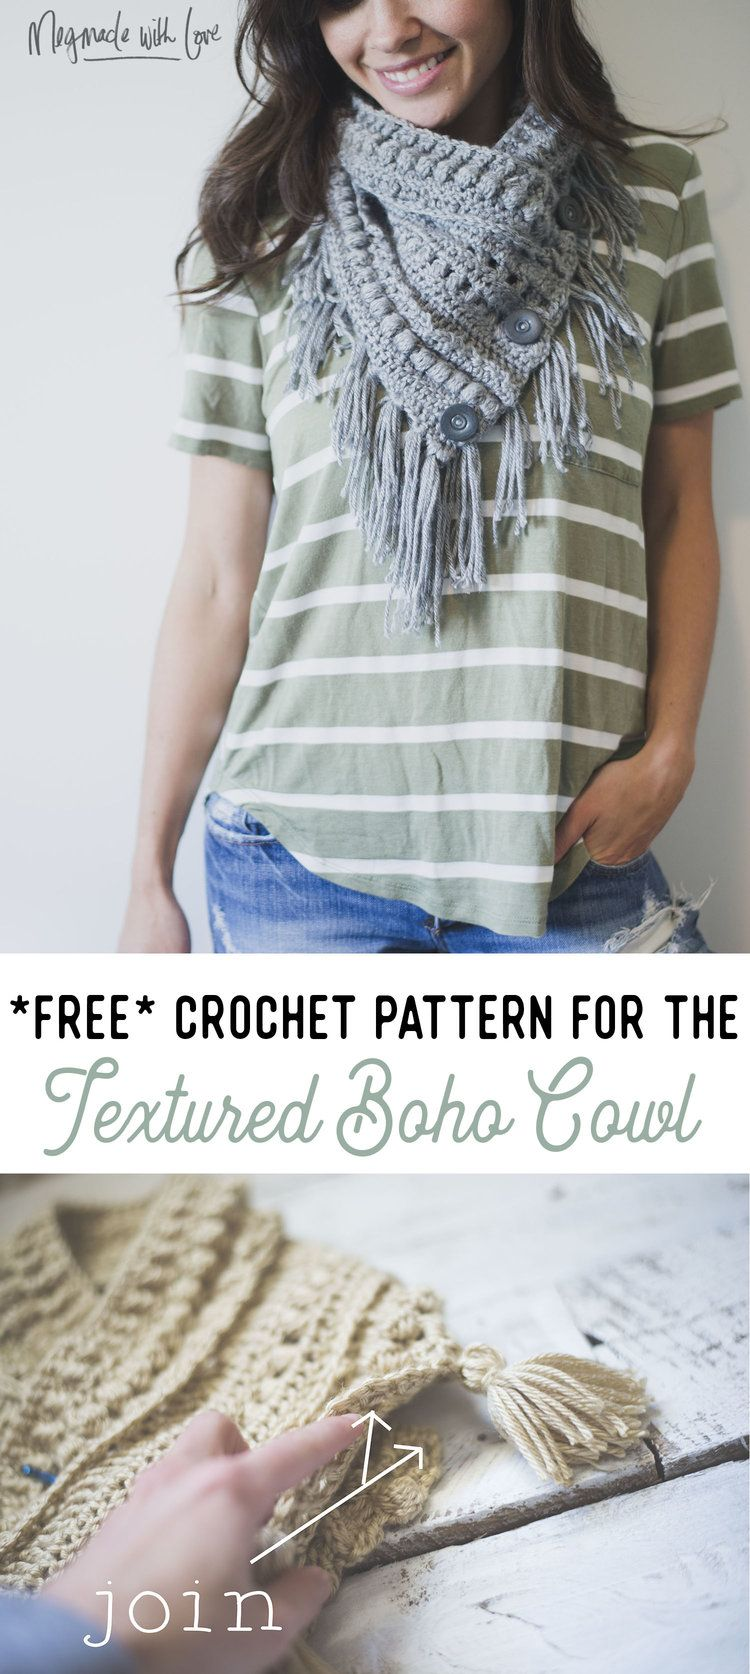 Free Crochet Pattern for the Textured Boho Cowl | Crochet Blogger ...